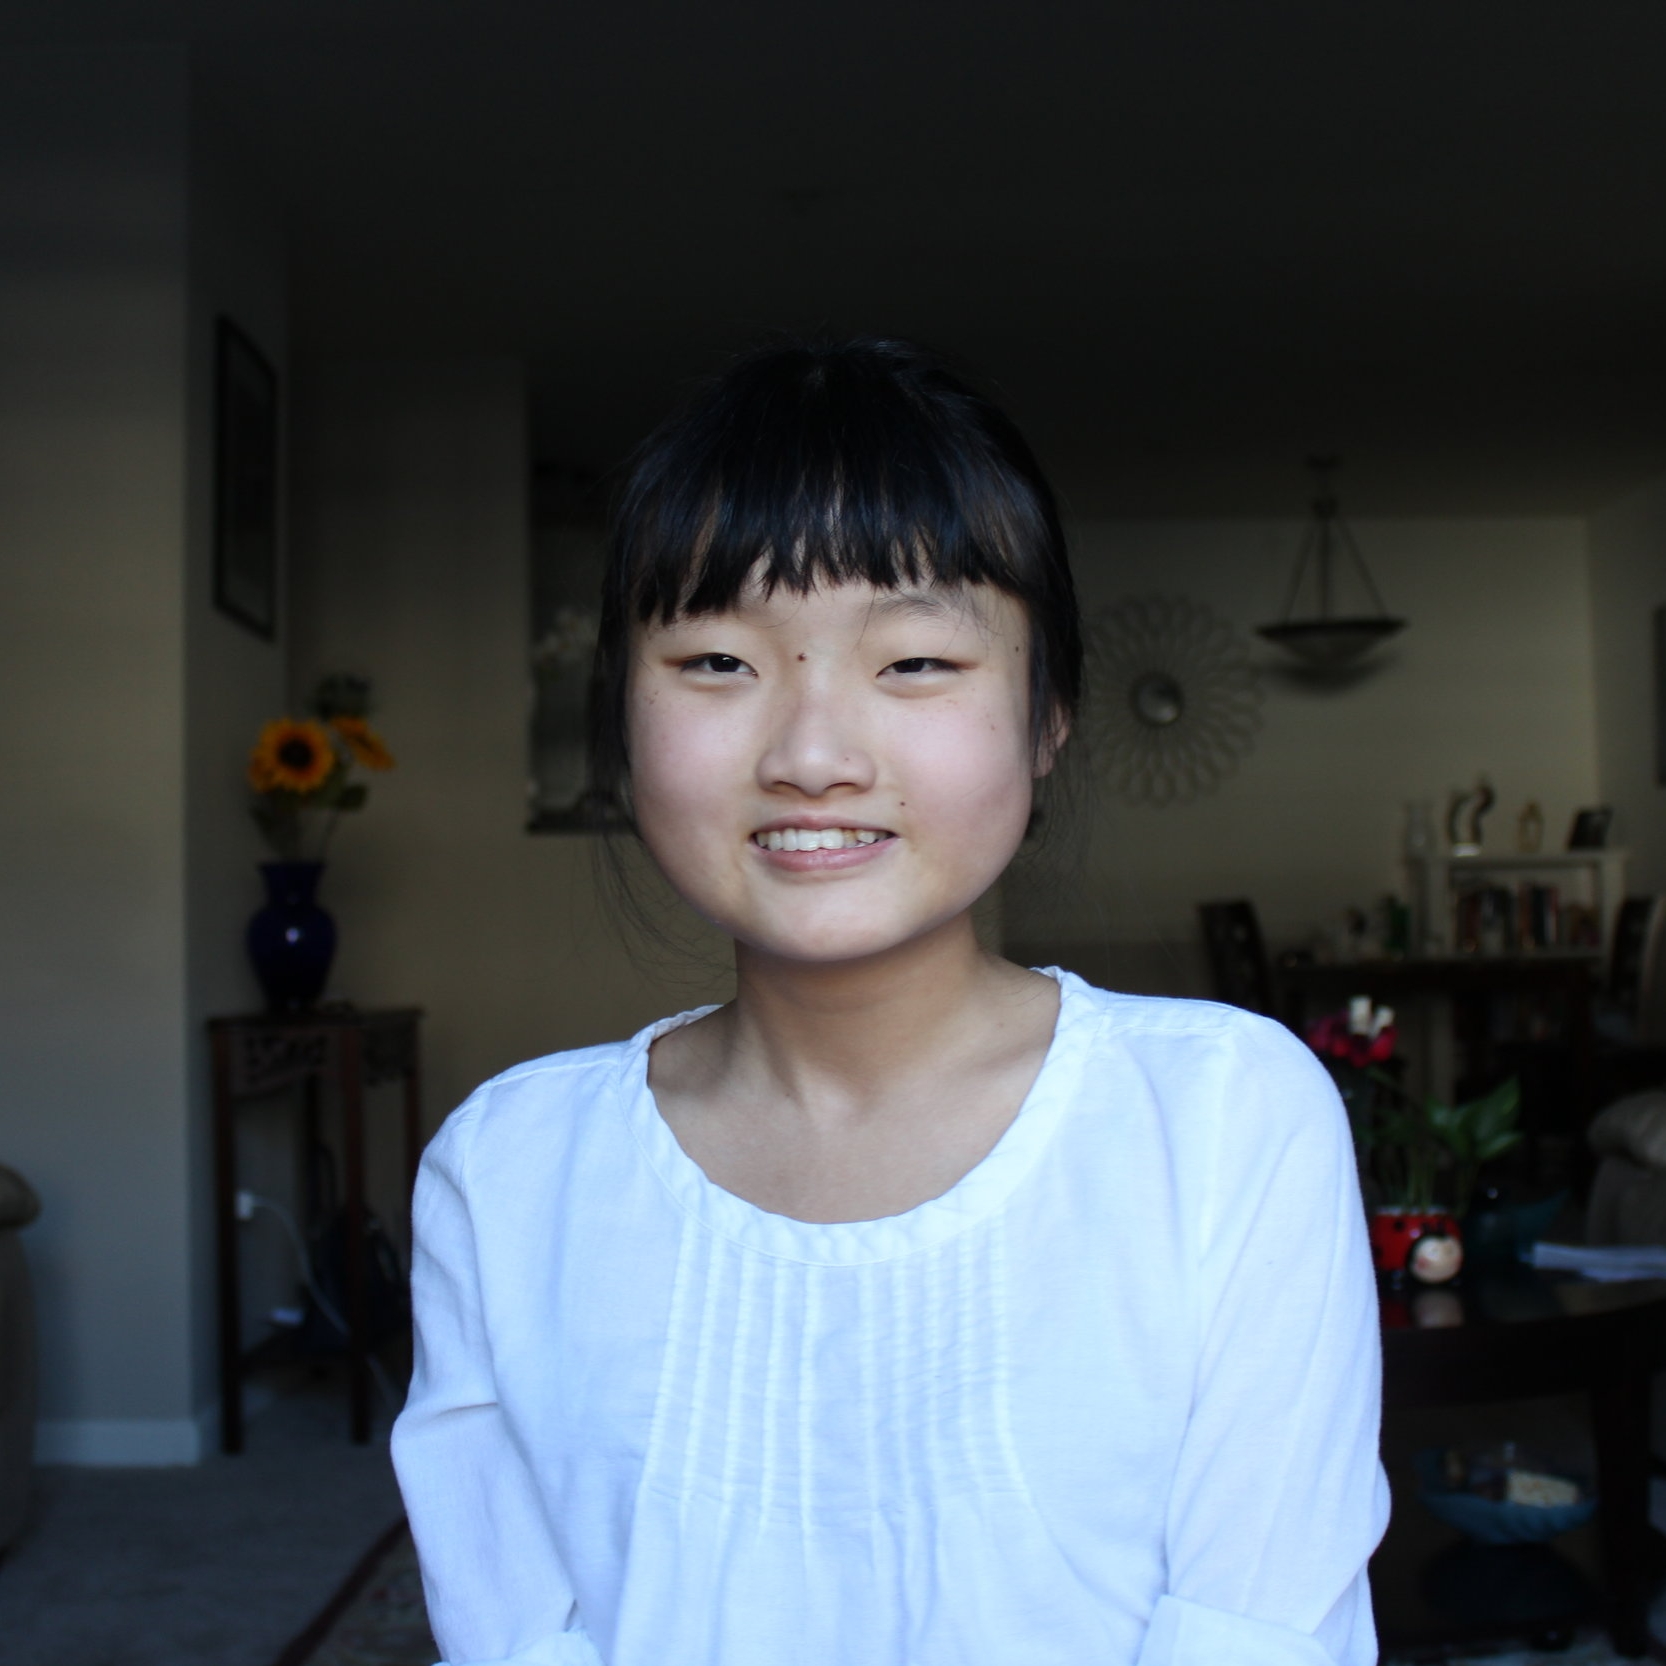 Melissa Shang  is an 15-year-old who goes to Newton South High School in Massachusetts. Born with a form of muscular dystrophy called Charcot-Marie-Tooth, Melissa is a disability advocate and author. In 2014, with the help of her sister Eva, Melissa launched a viral petition of a disabled American Girl doll that was featured in Cosmopolitan, USA Today, CBS, HLN, IB Times, and other major news outlets and raised massive public attention to disability representation in children's toys. Currently, Melissa has published her first book,Mia Lee is Wheeling Through Middle School.